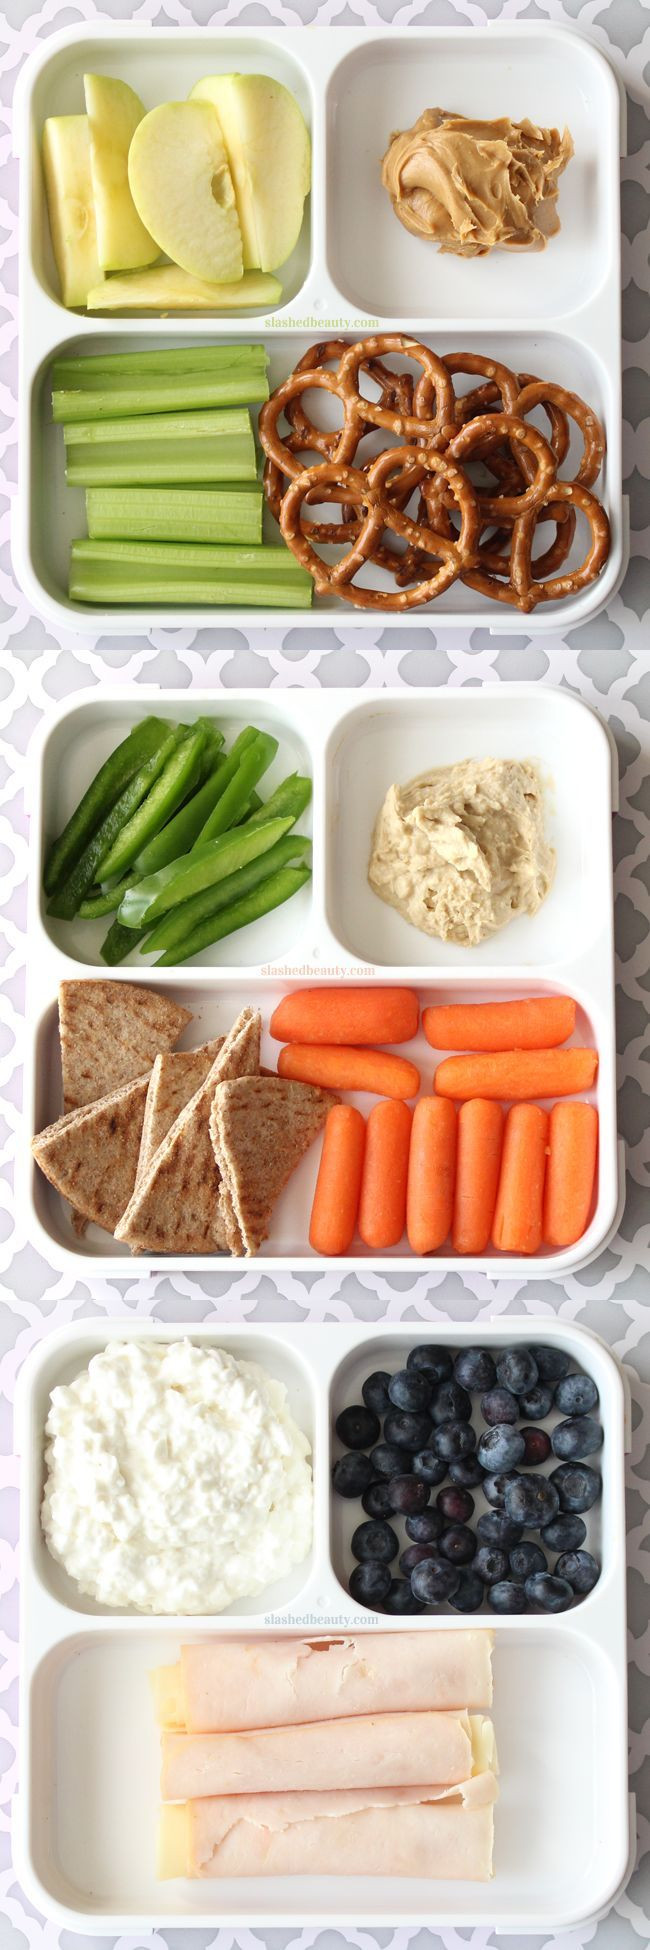 Healthy Food Snacks  549 best images about Healthy Snacks For Kids on Pinterest